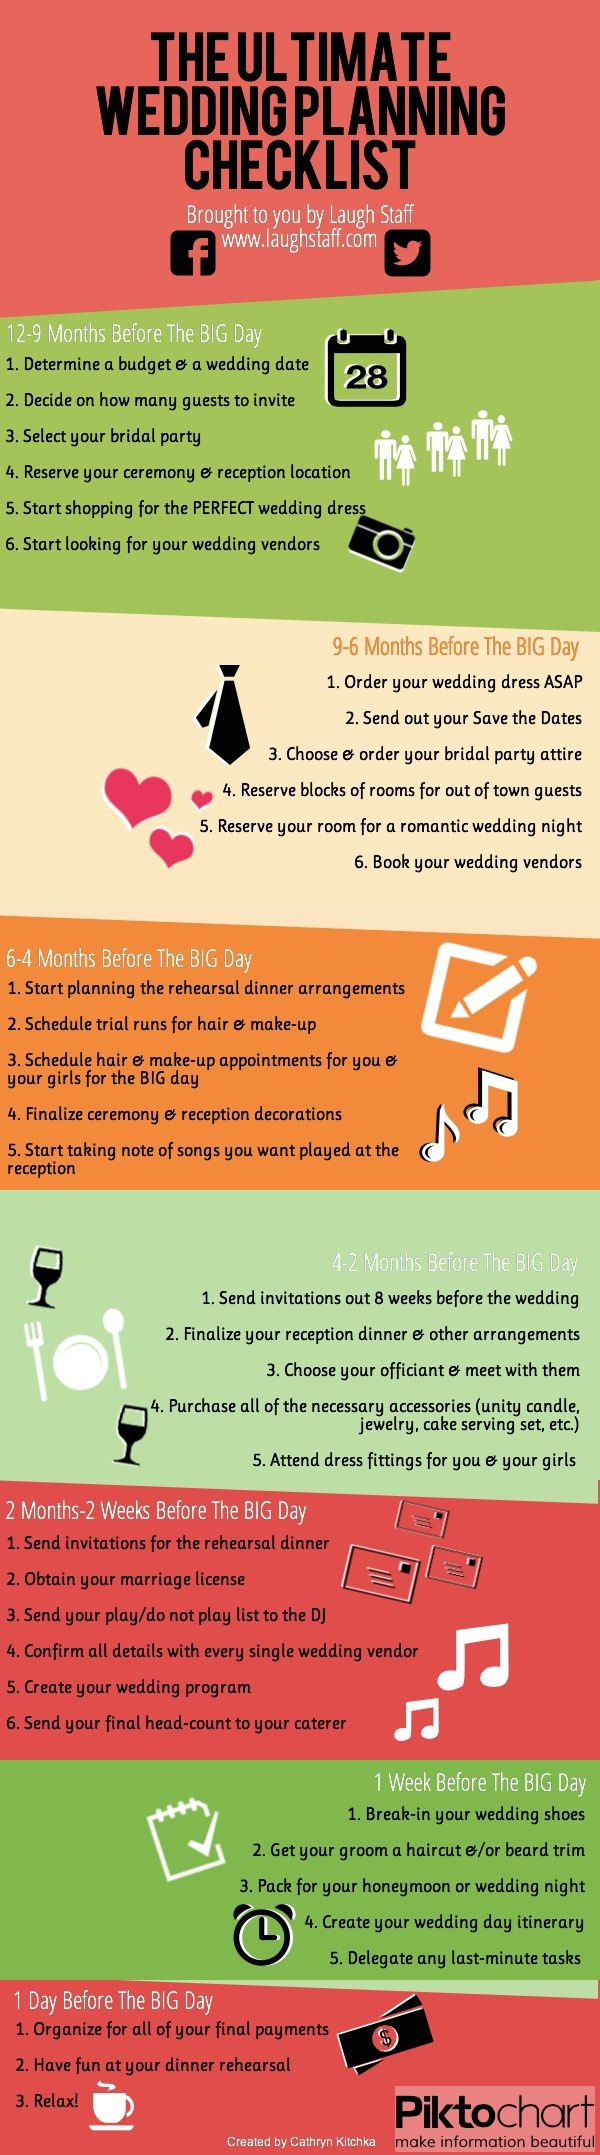 wedding planning checklist spreadsheet free%0A The Ultimate Wedding Planning Checklist   infographic  created by a   Piktochart user